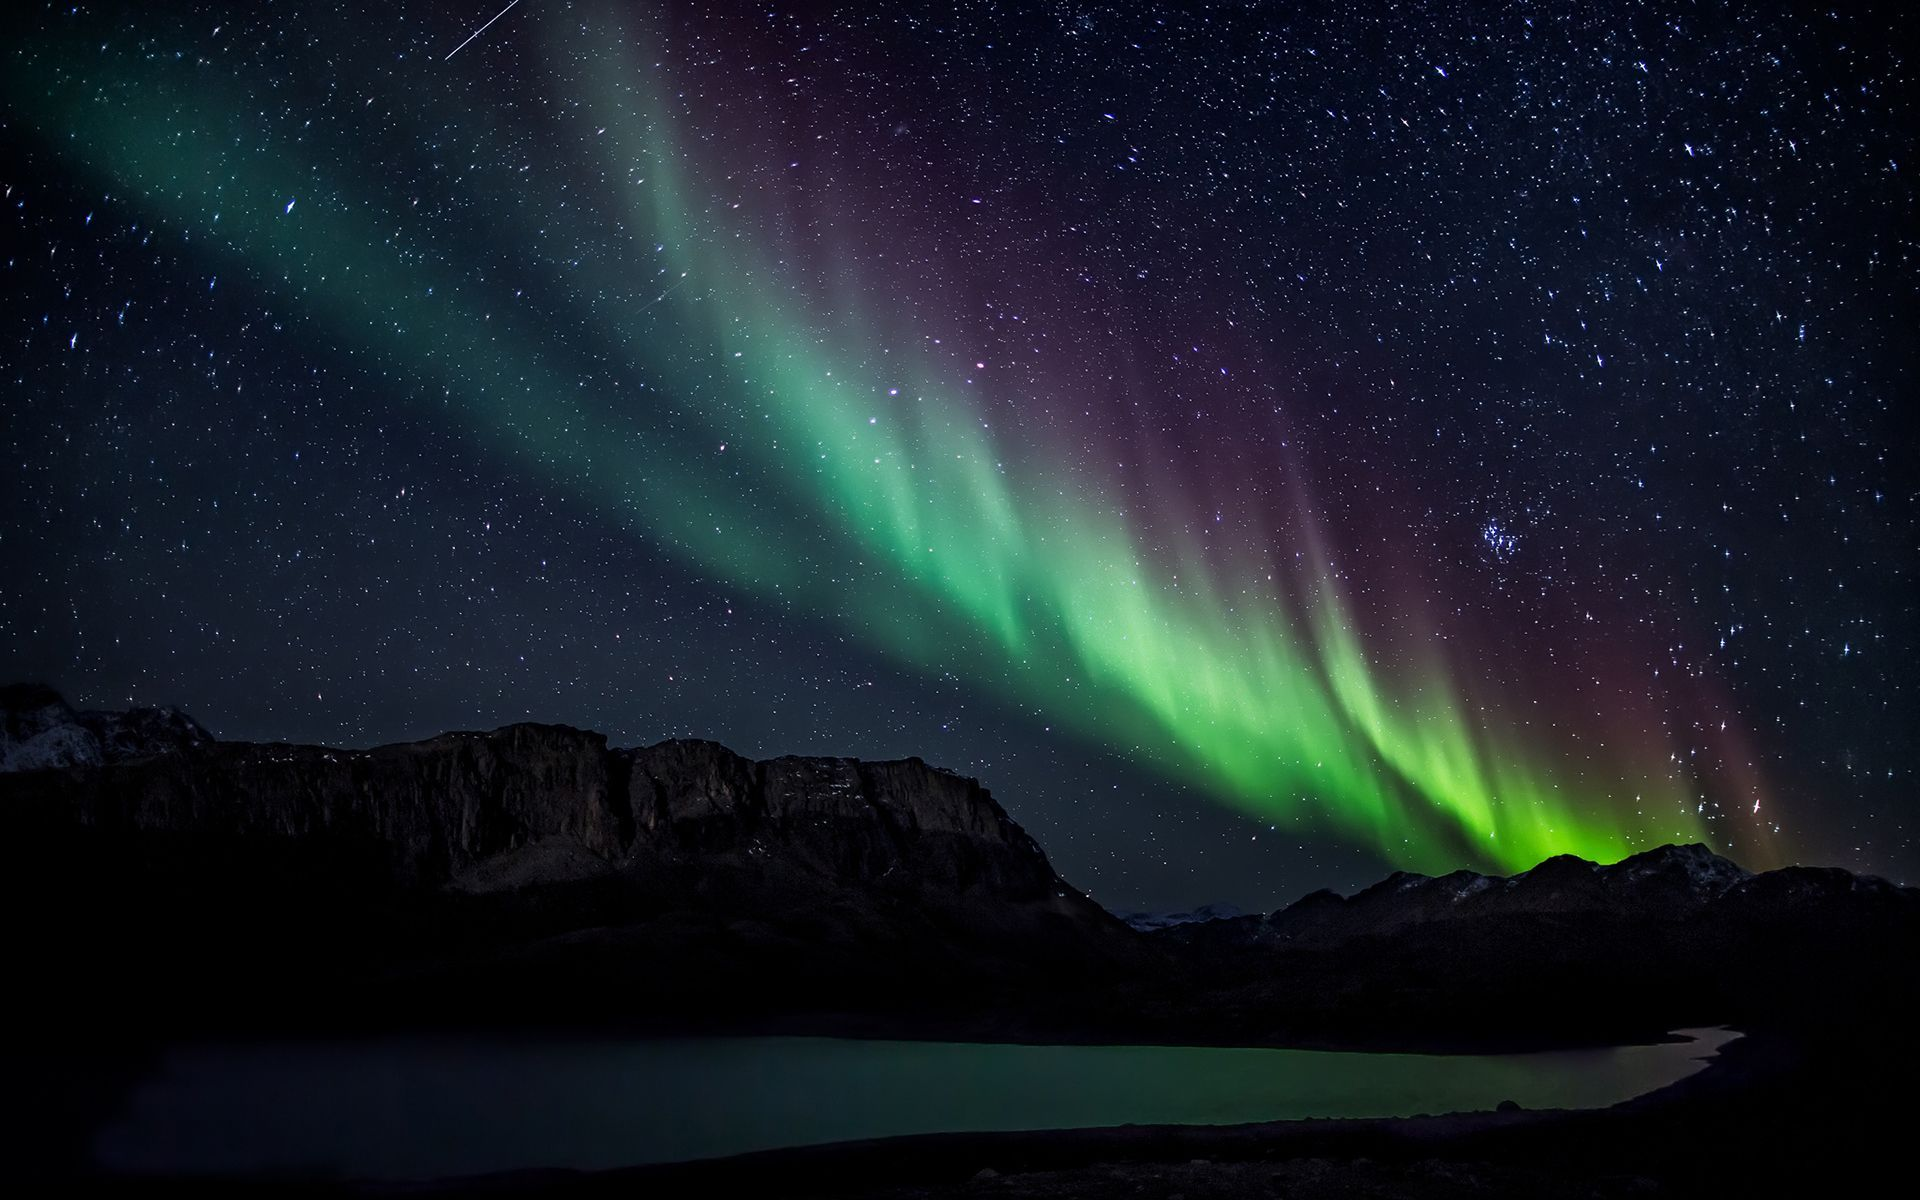 Collection of Aurora Borealis Wallpaper Hd on HDWallpapers